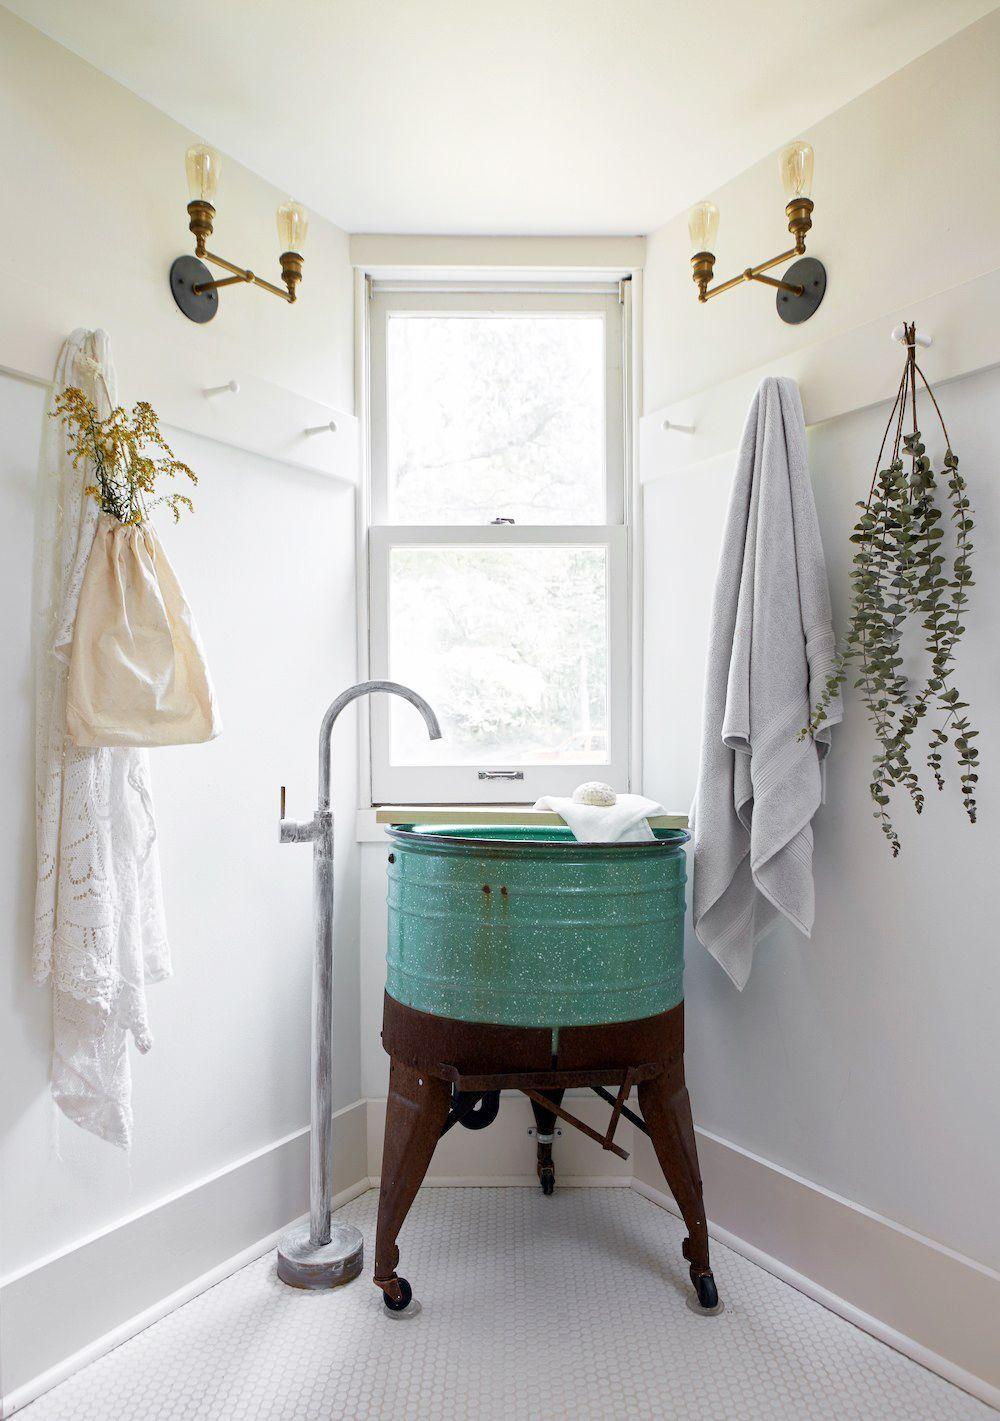 11+ Elegant Bathroom Ideas That Are Cheap and Easy to Imitate - 11